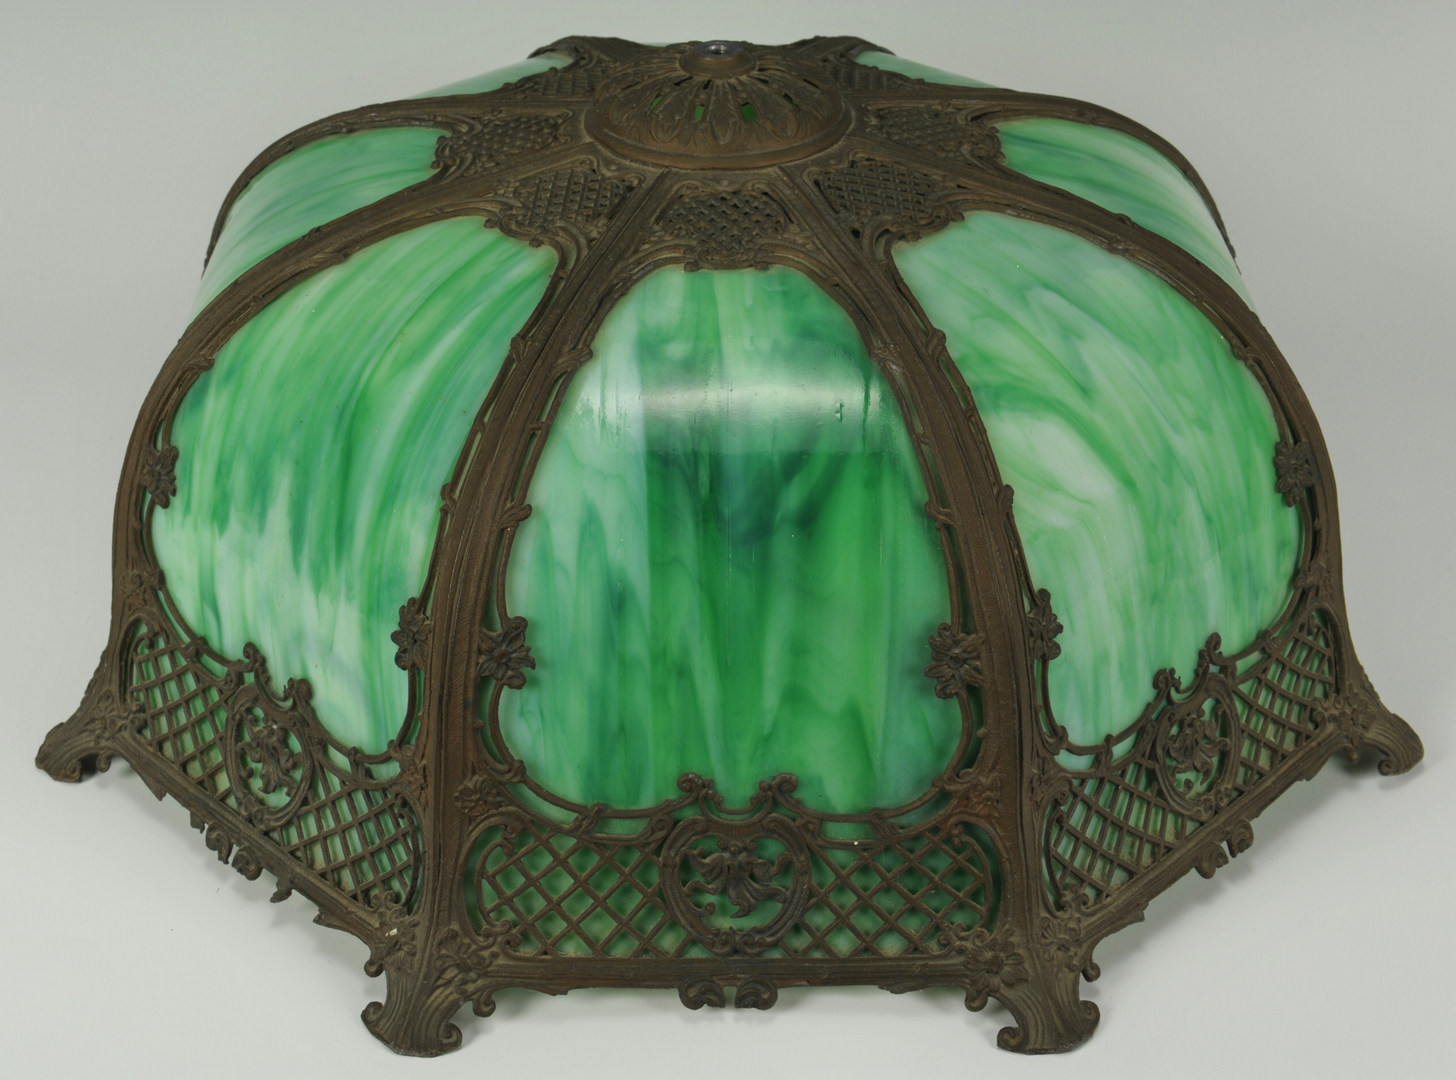 Lot 274: Table Lamp with Slag Glass Shade and Base